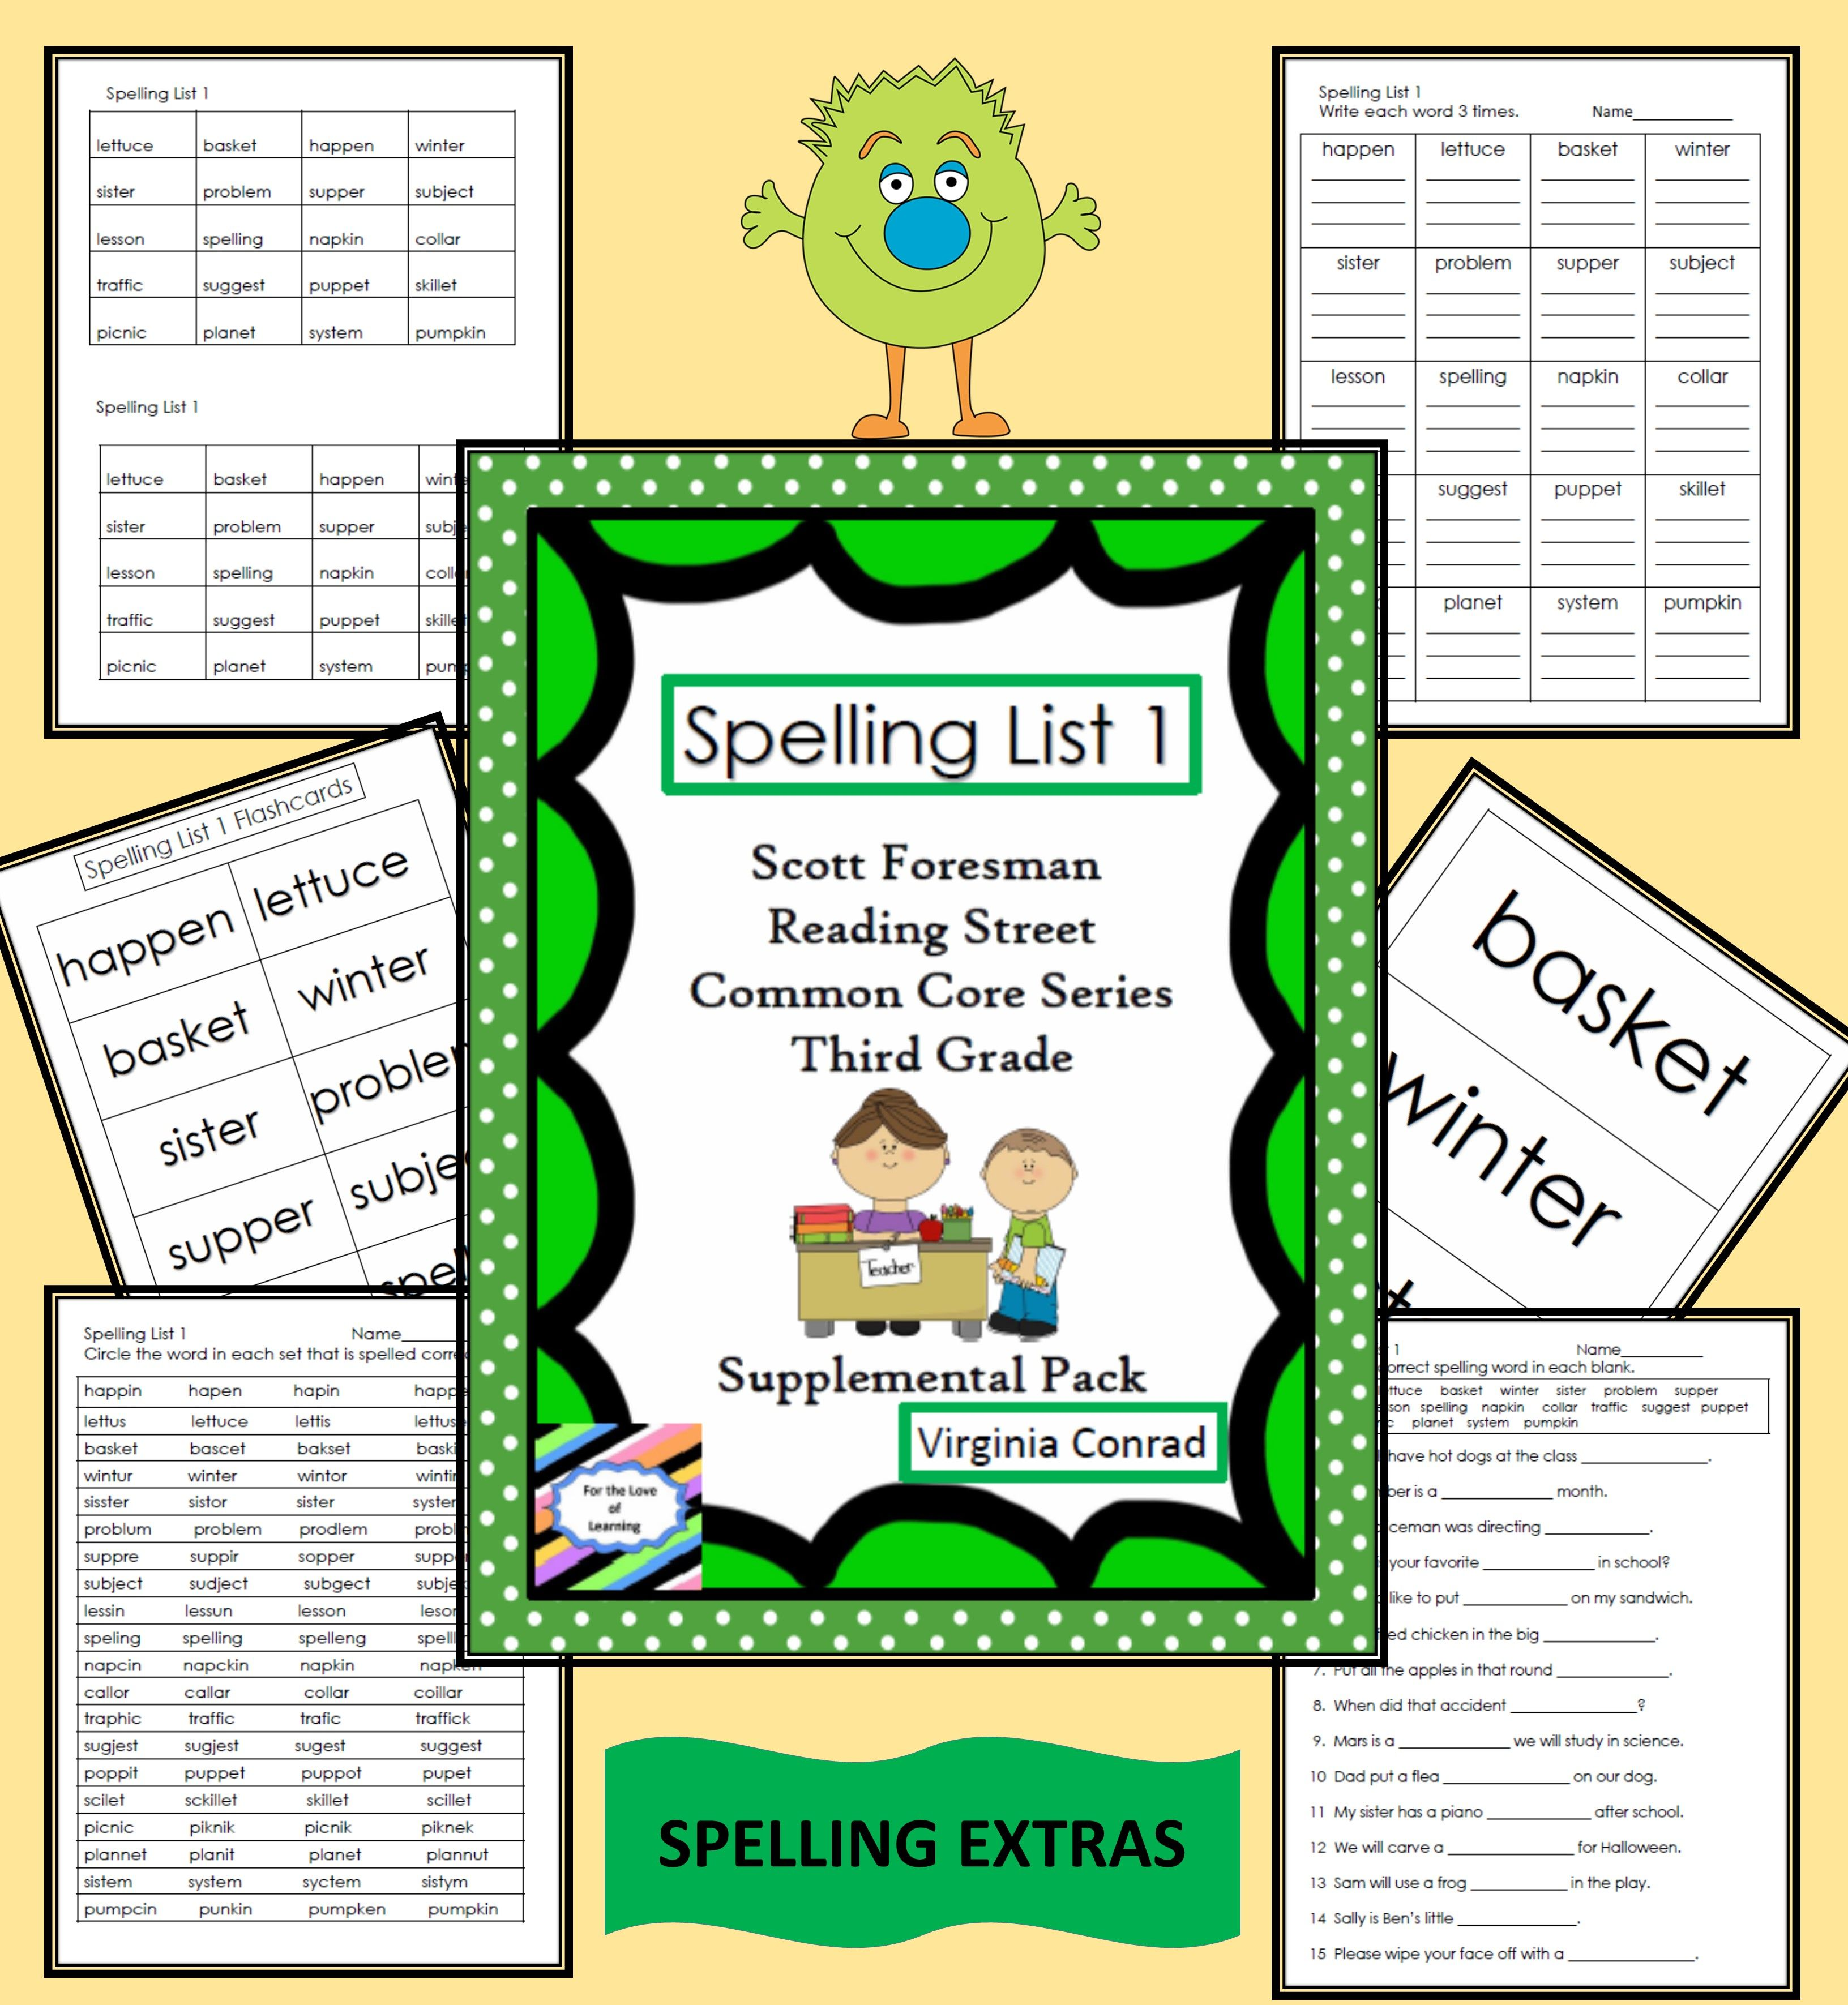 Spelling Packet For List 1 Scott Foresman Third Grade Reading Street Basal